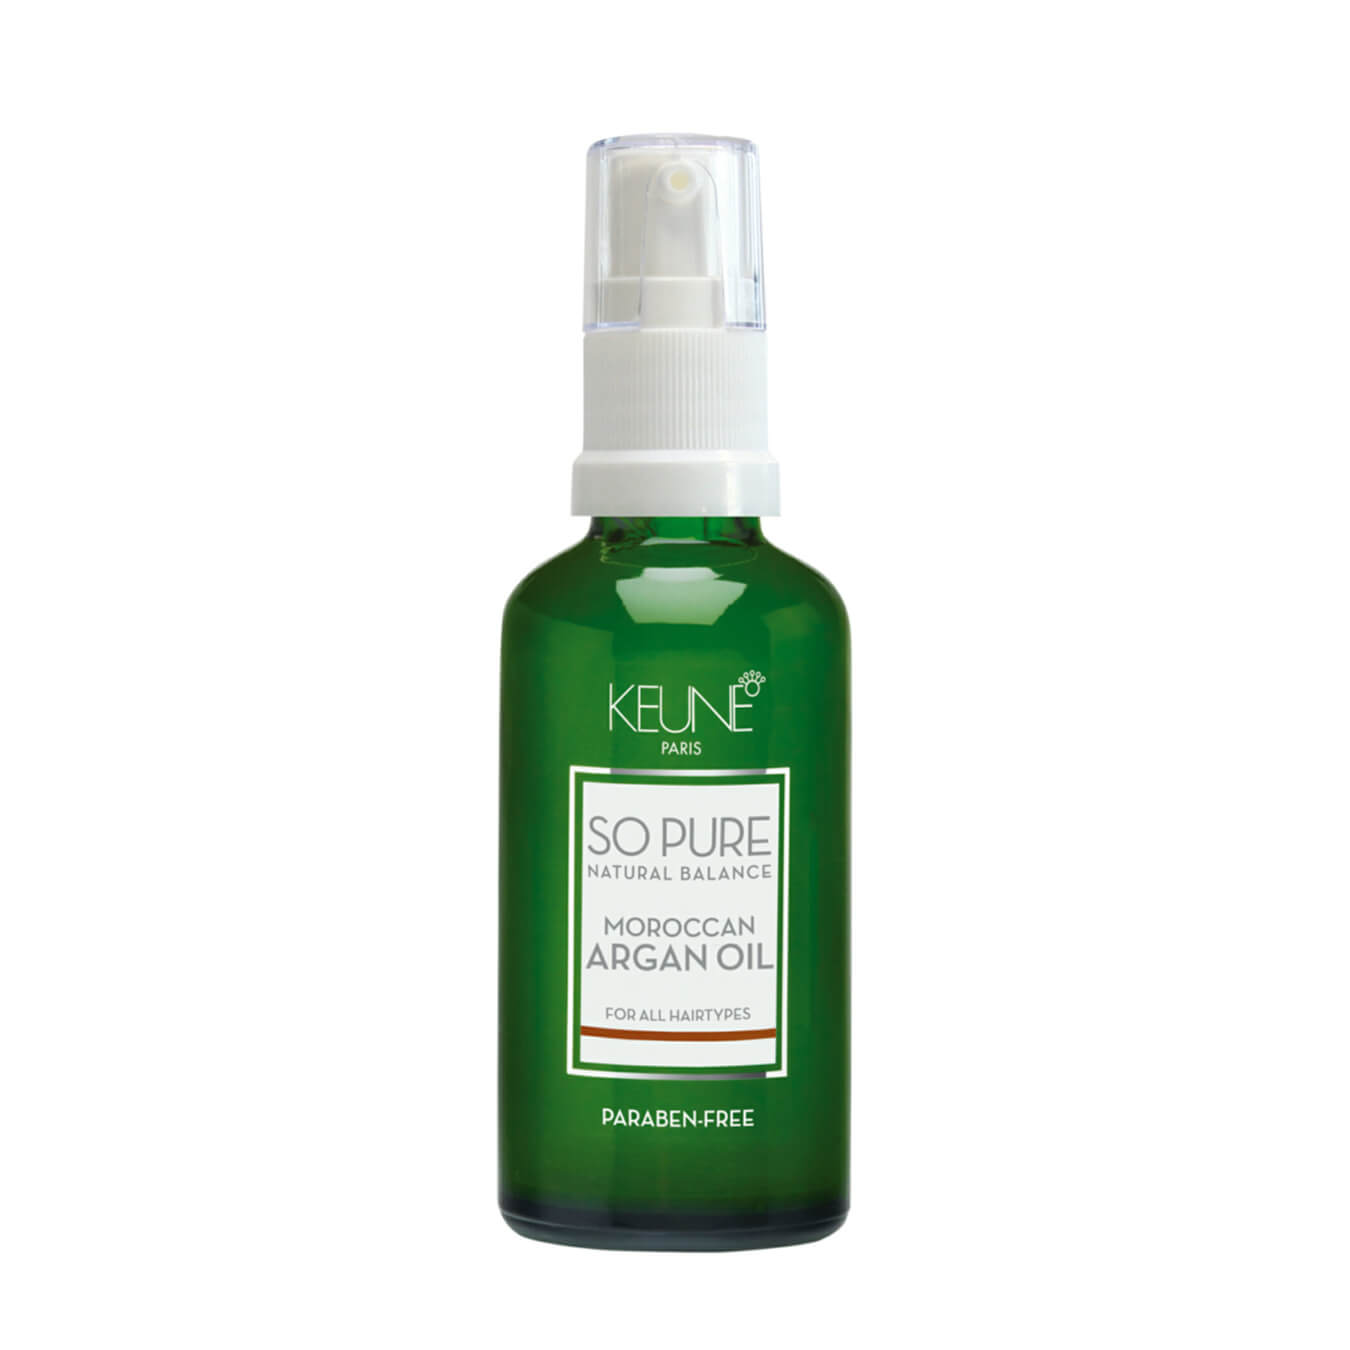 Koop Keune So Pure Moroccan Argan Oil 45ml